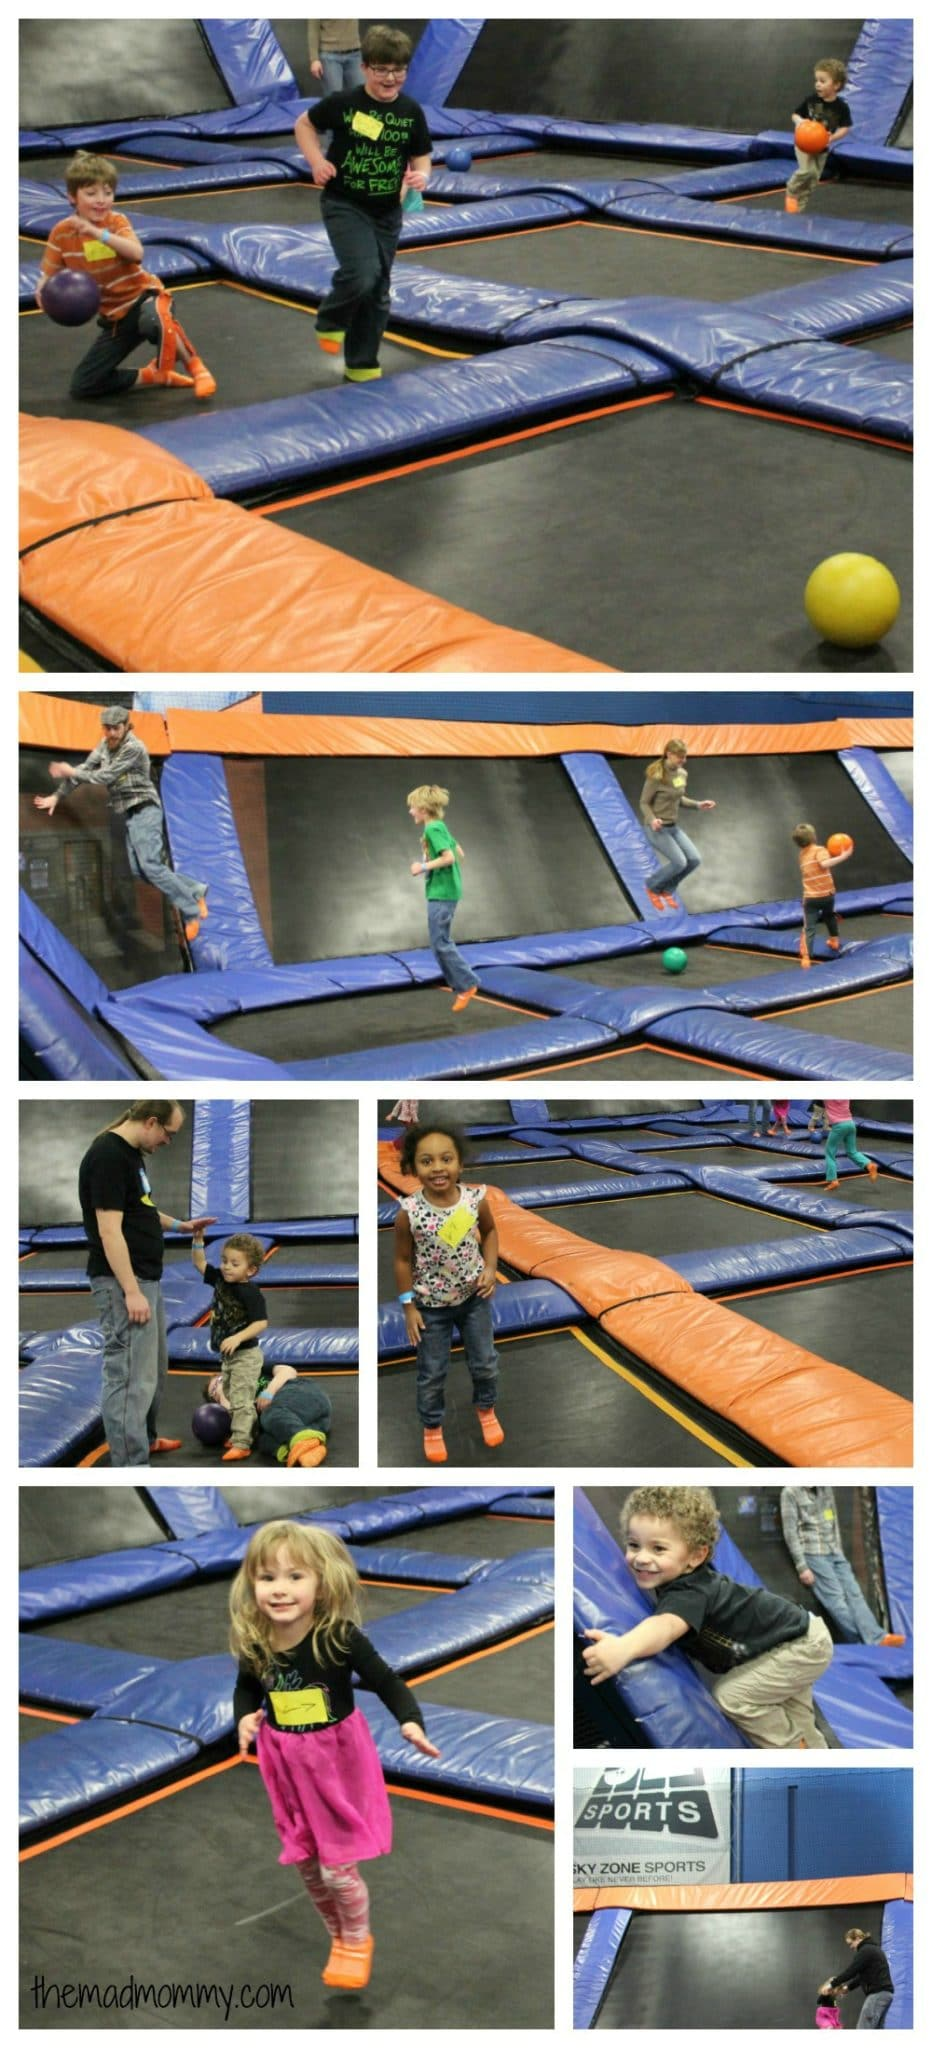 sky zone birthday party themadmommy.com